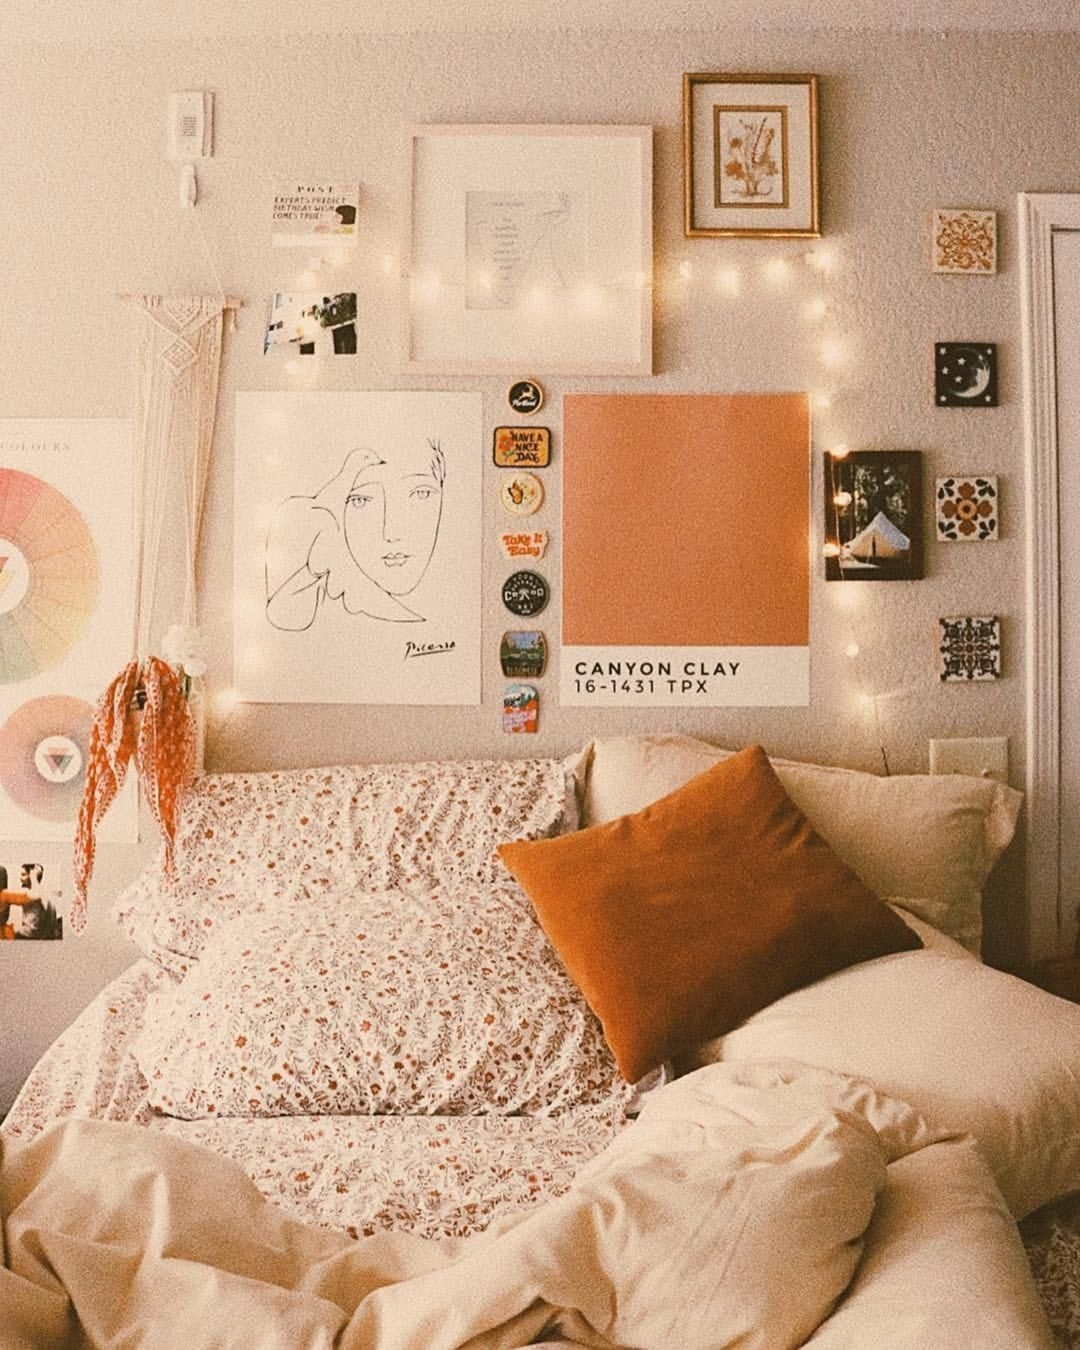 Engaging Minimalist Bohemian Dorm Room Bedding On Engaging 35 Best Color Harmony Design to Make Your Room More On Minimalist Bohemian Dorm Room Bedding